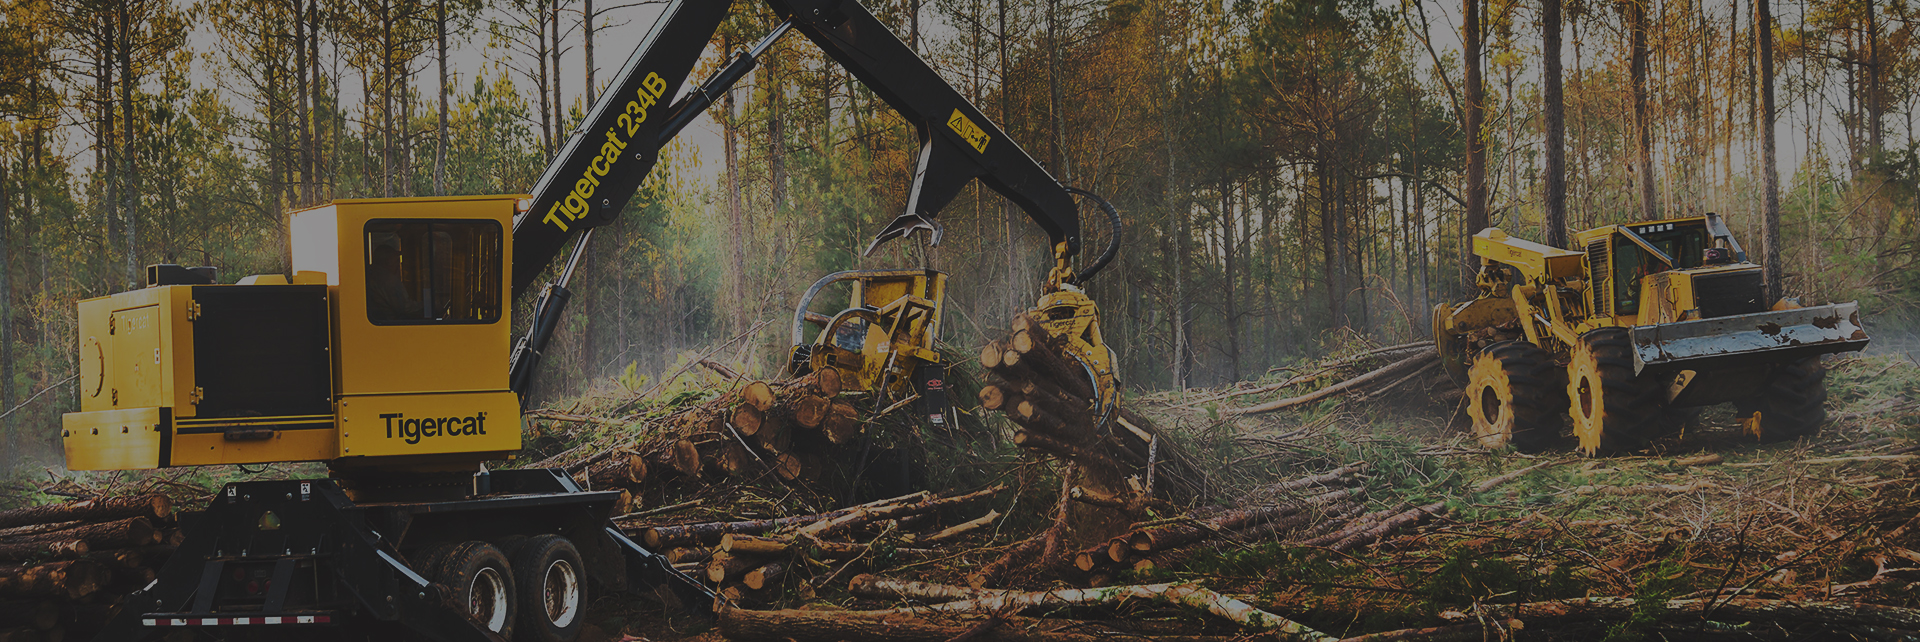 TPMS for Forestry Equipment